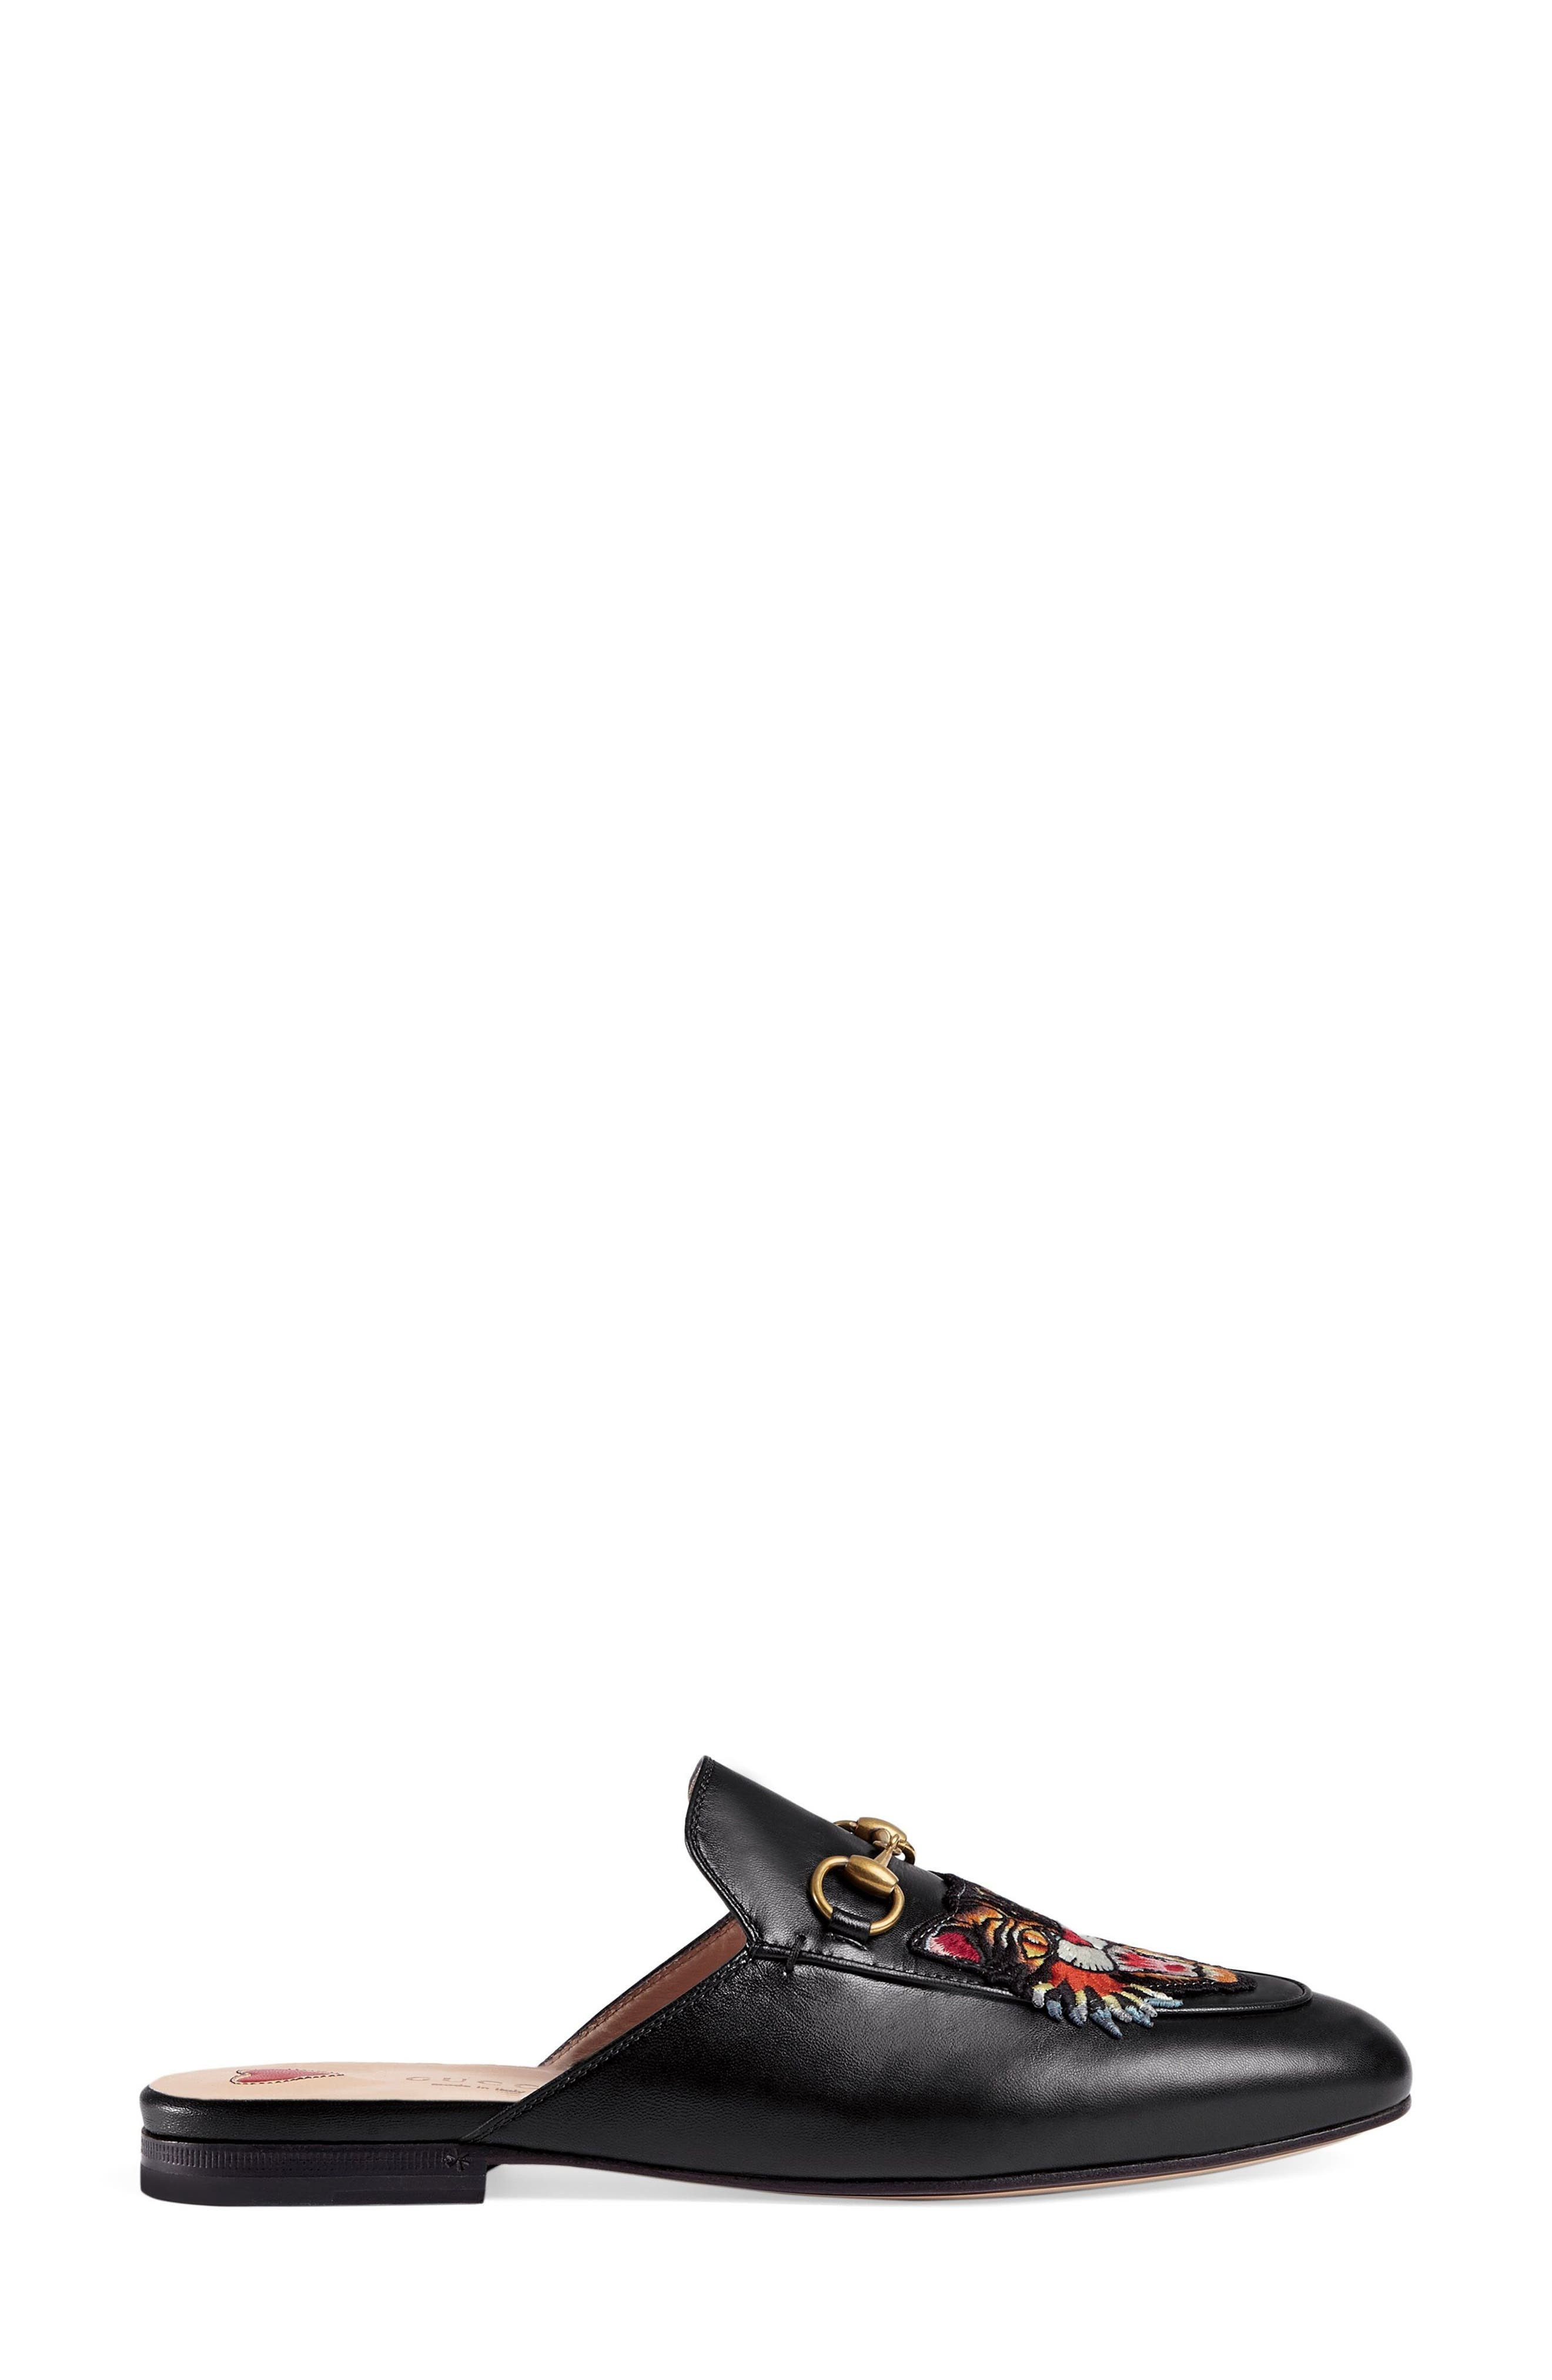 Gucci Princetown Angry Cat Mule Loafer (Women)